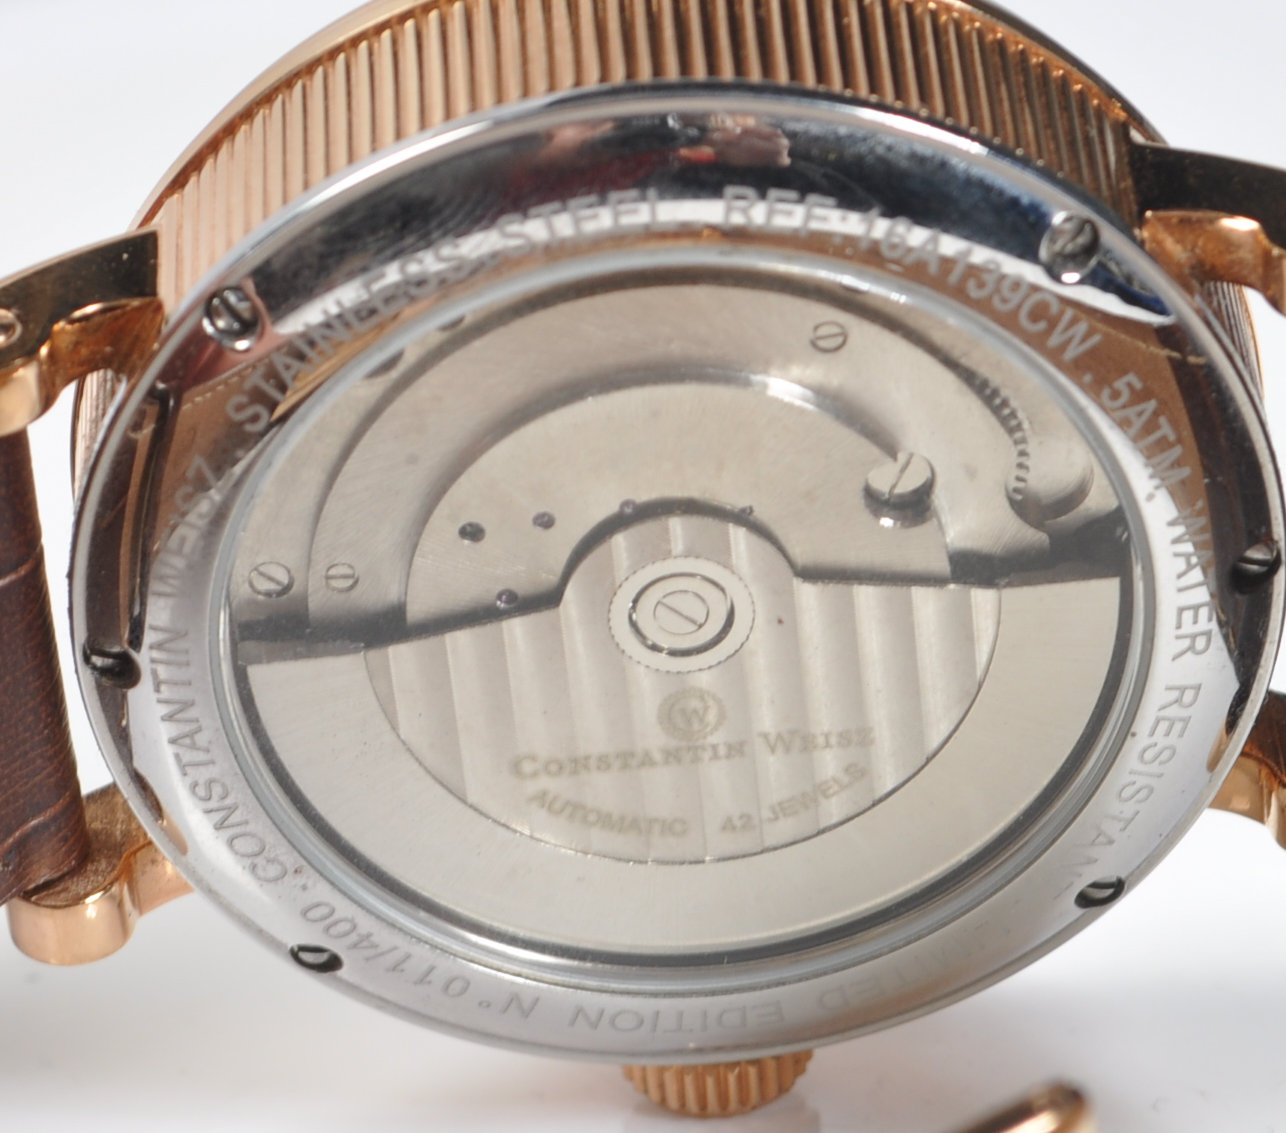 CONSTANTIN WEISZ DOUBLE HEART AUTOMATIC WRISTWATCH - Image 4 of 7